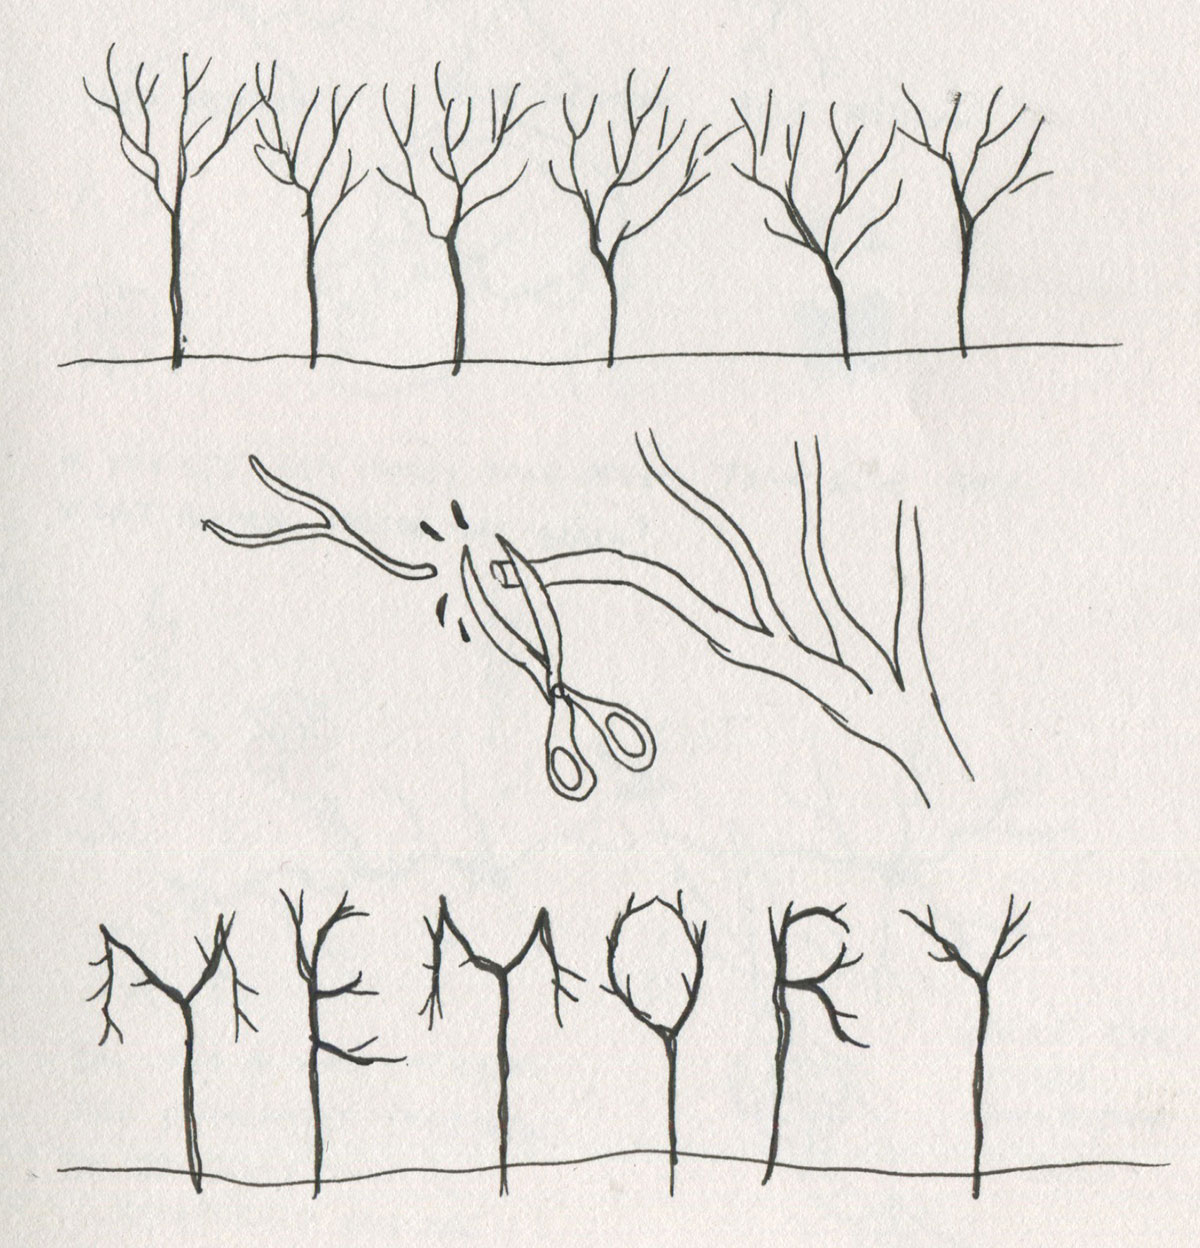 Sketch of comic panel about memory